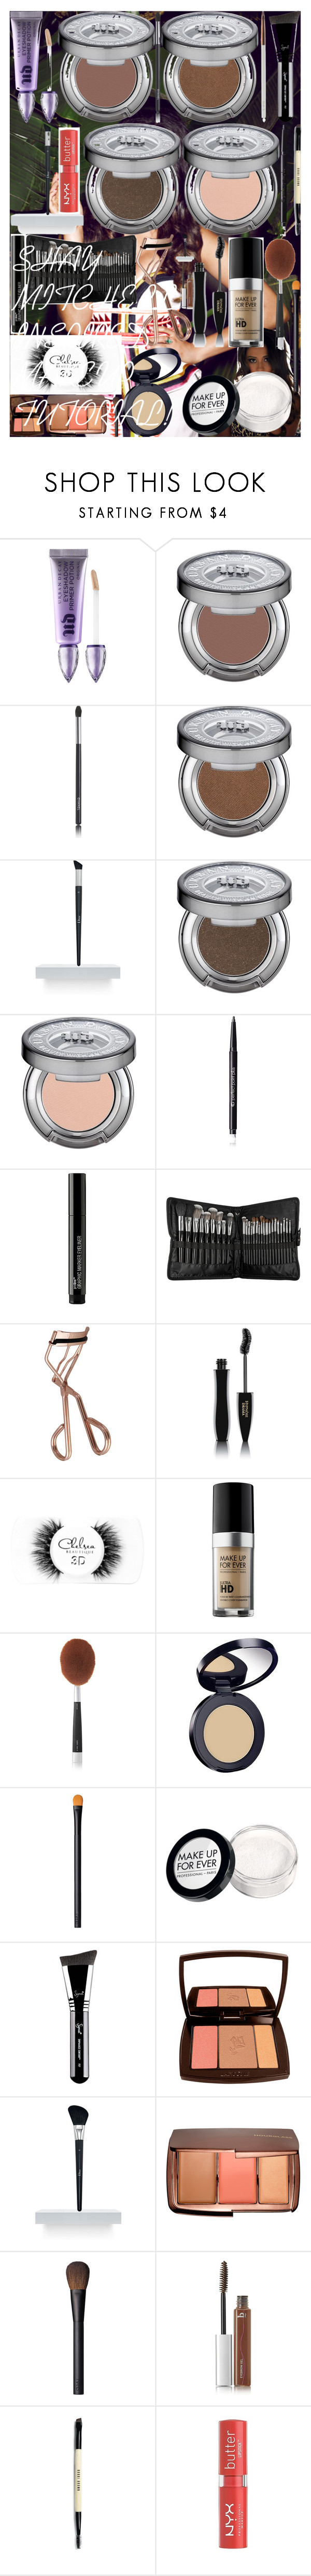 """""""SHAY MITCHELL INSPIRED MAKEUP TUTORIAL!"""" by oroartye-1 on Polyvore featuring beauty, Urban Decay, Chanel, Christian Dior, Wet n Wild, Sephora Collection, Tweezerman, Lancôme, Chelsea Beautique and MAKE UP FOR EVER"""